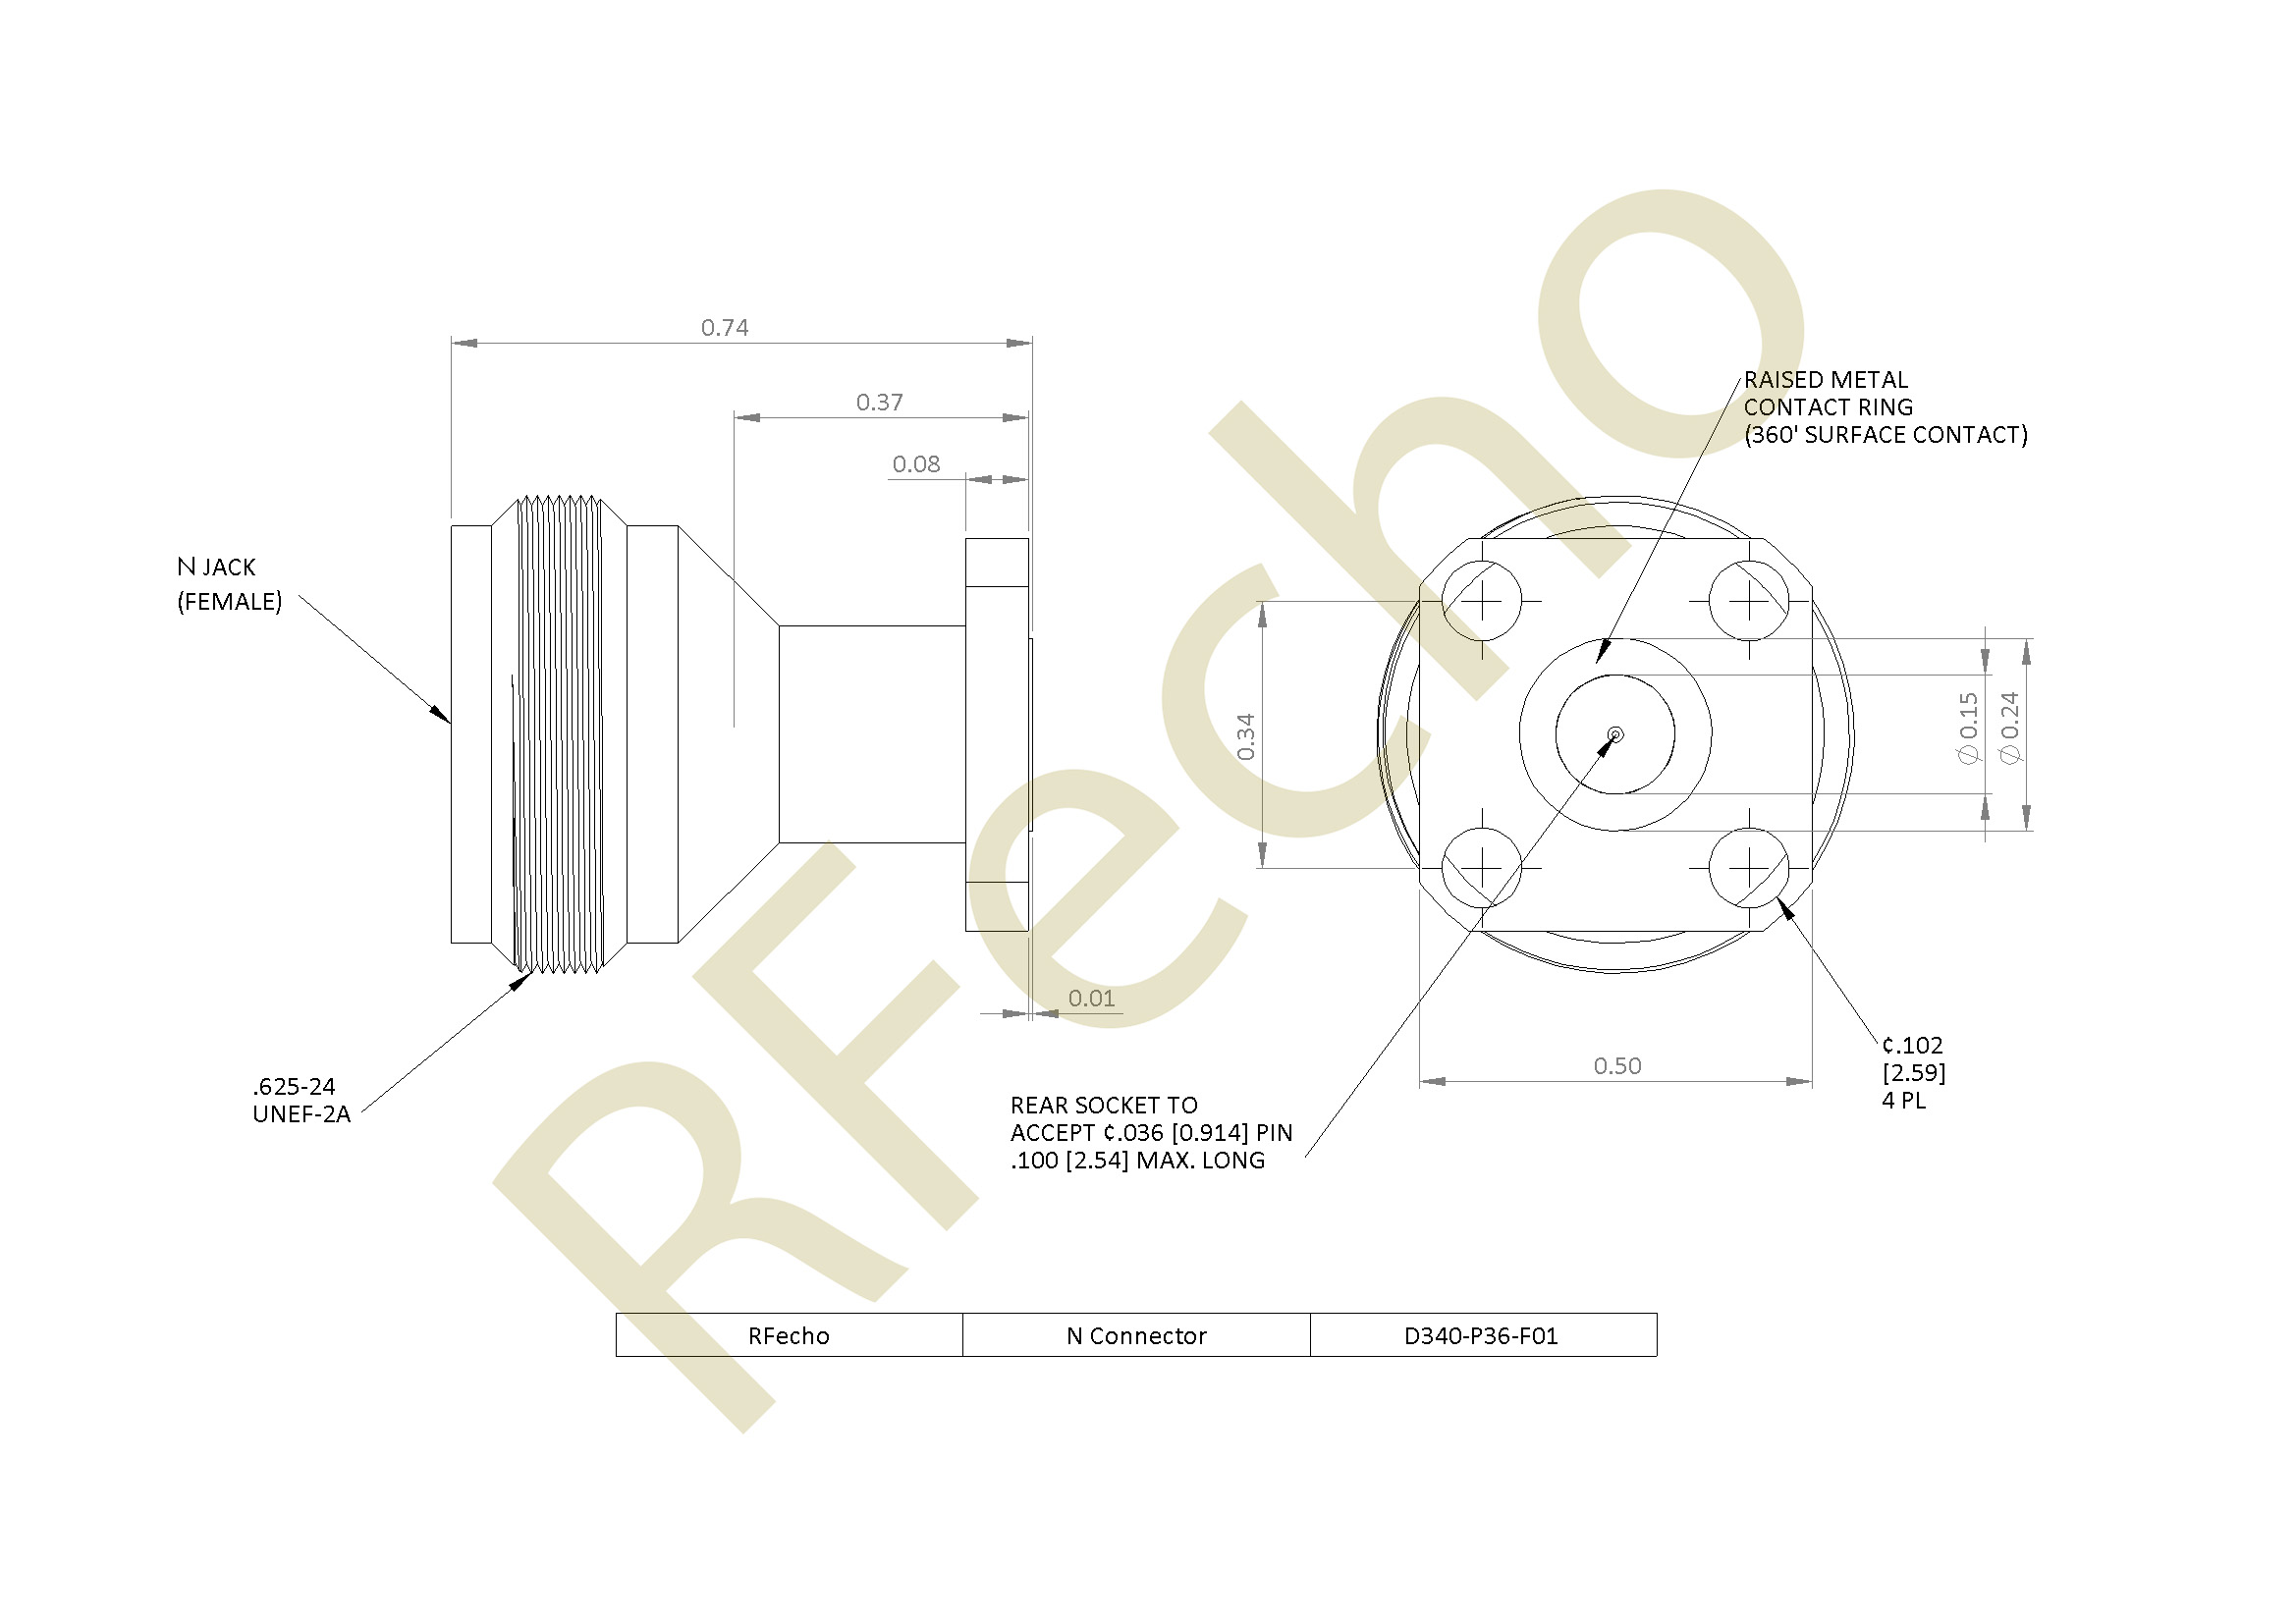 D340 P36 F01 outline N 18 GHz, 0.036″ Accept Pin Diameter, 4 Hole .500″ Square Mounting Flange Female Connector